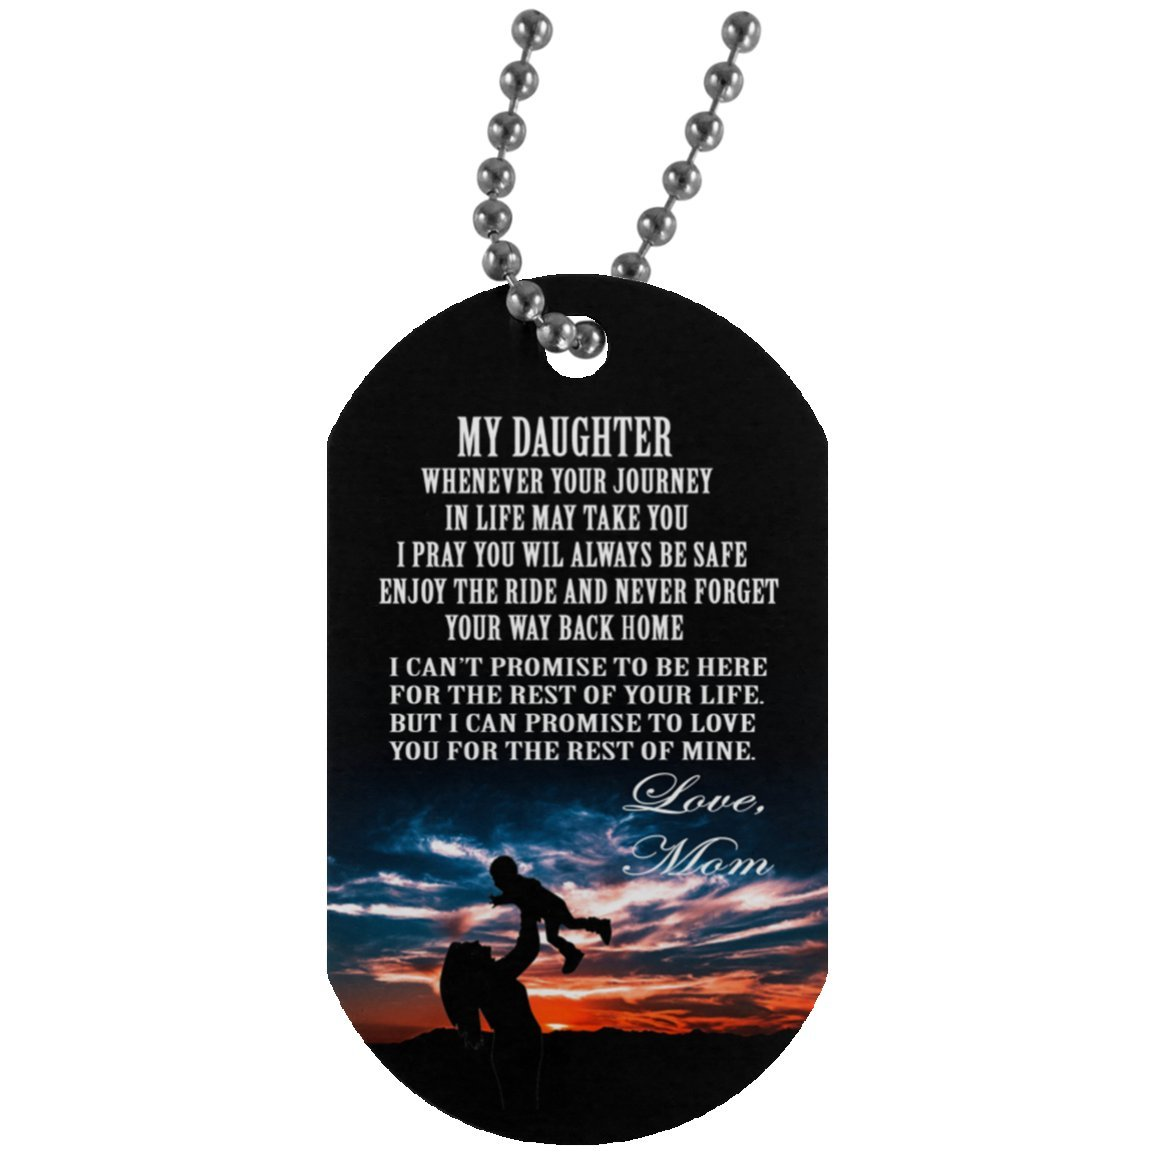 Mom to Daughter Dog tag Necklace -personalized Daughter necklace - Anniversary Gifts from Dad for teen Girls, Military inspired aluminum dog tag by iGifts